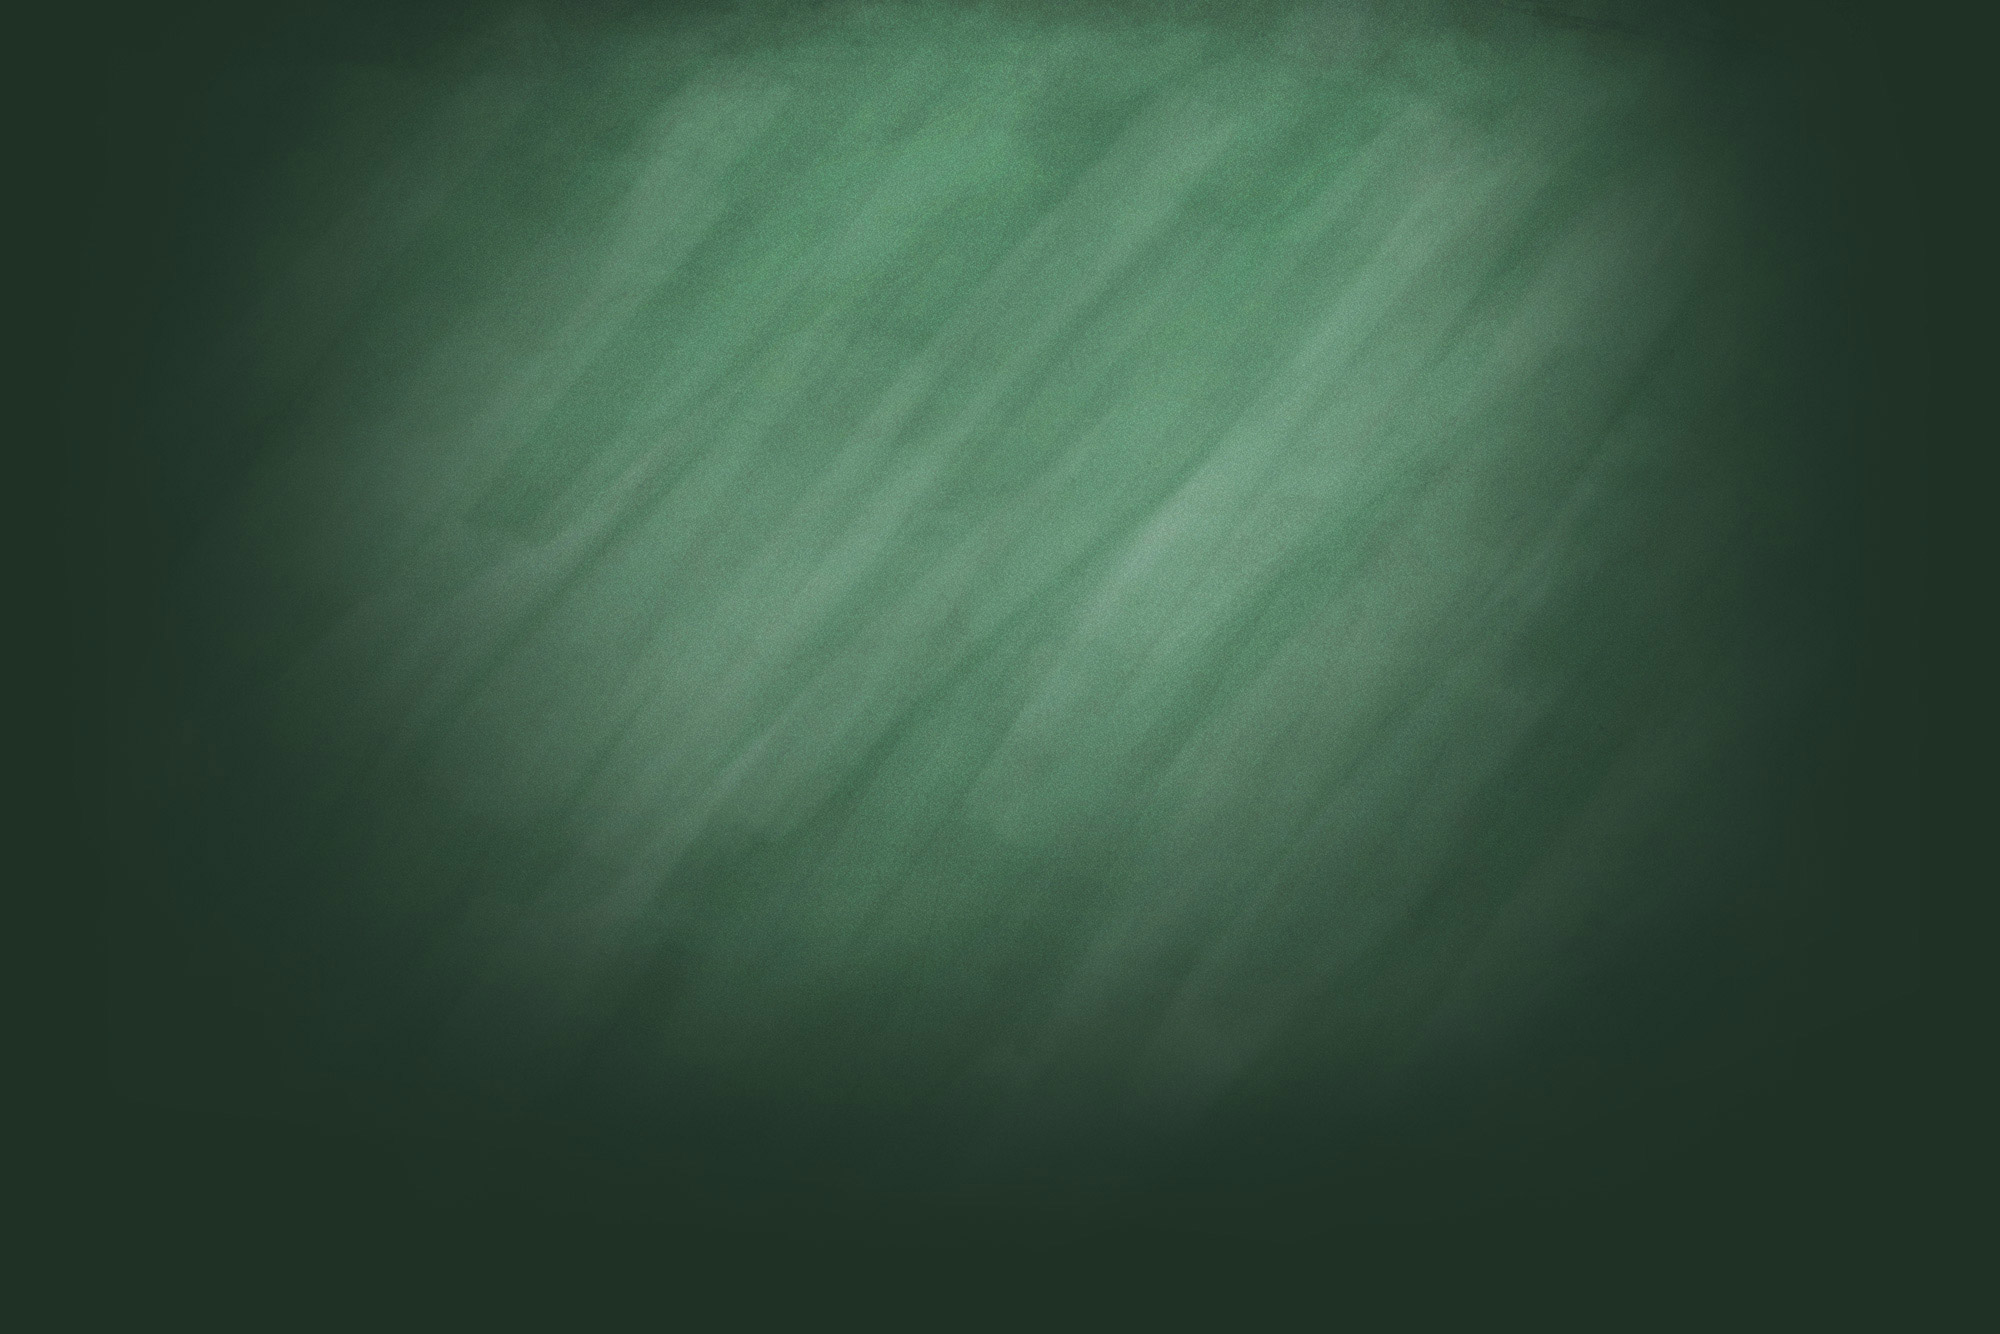 Group Of Green Chalkboard Background Wallpaper